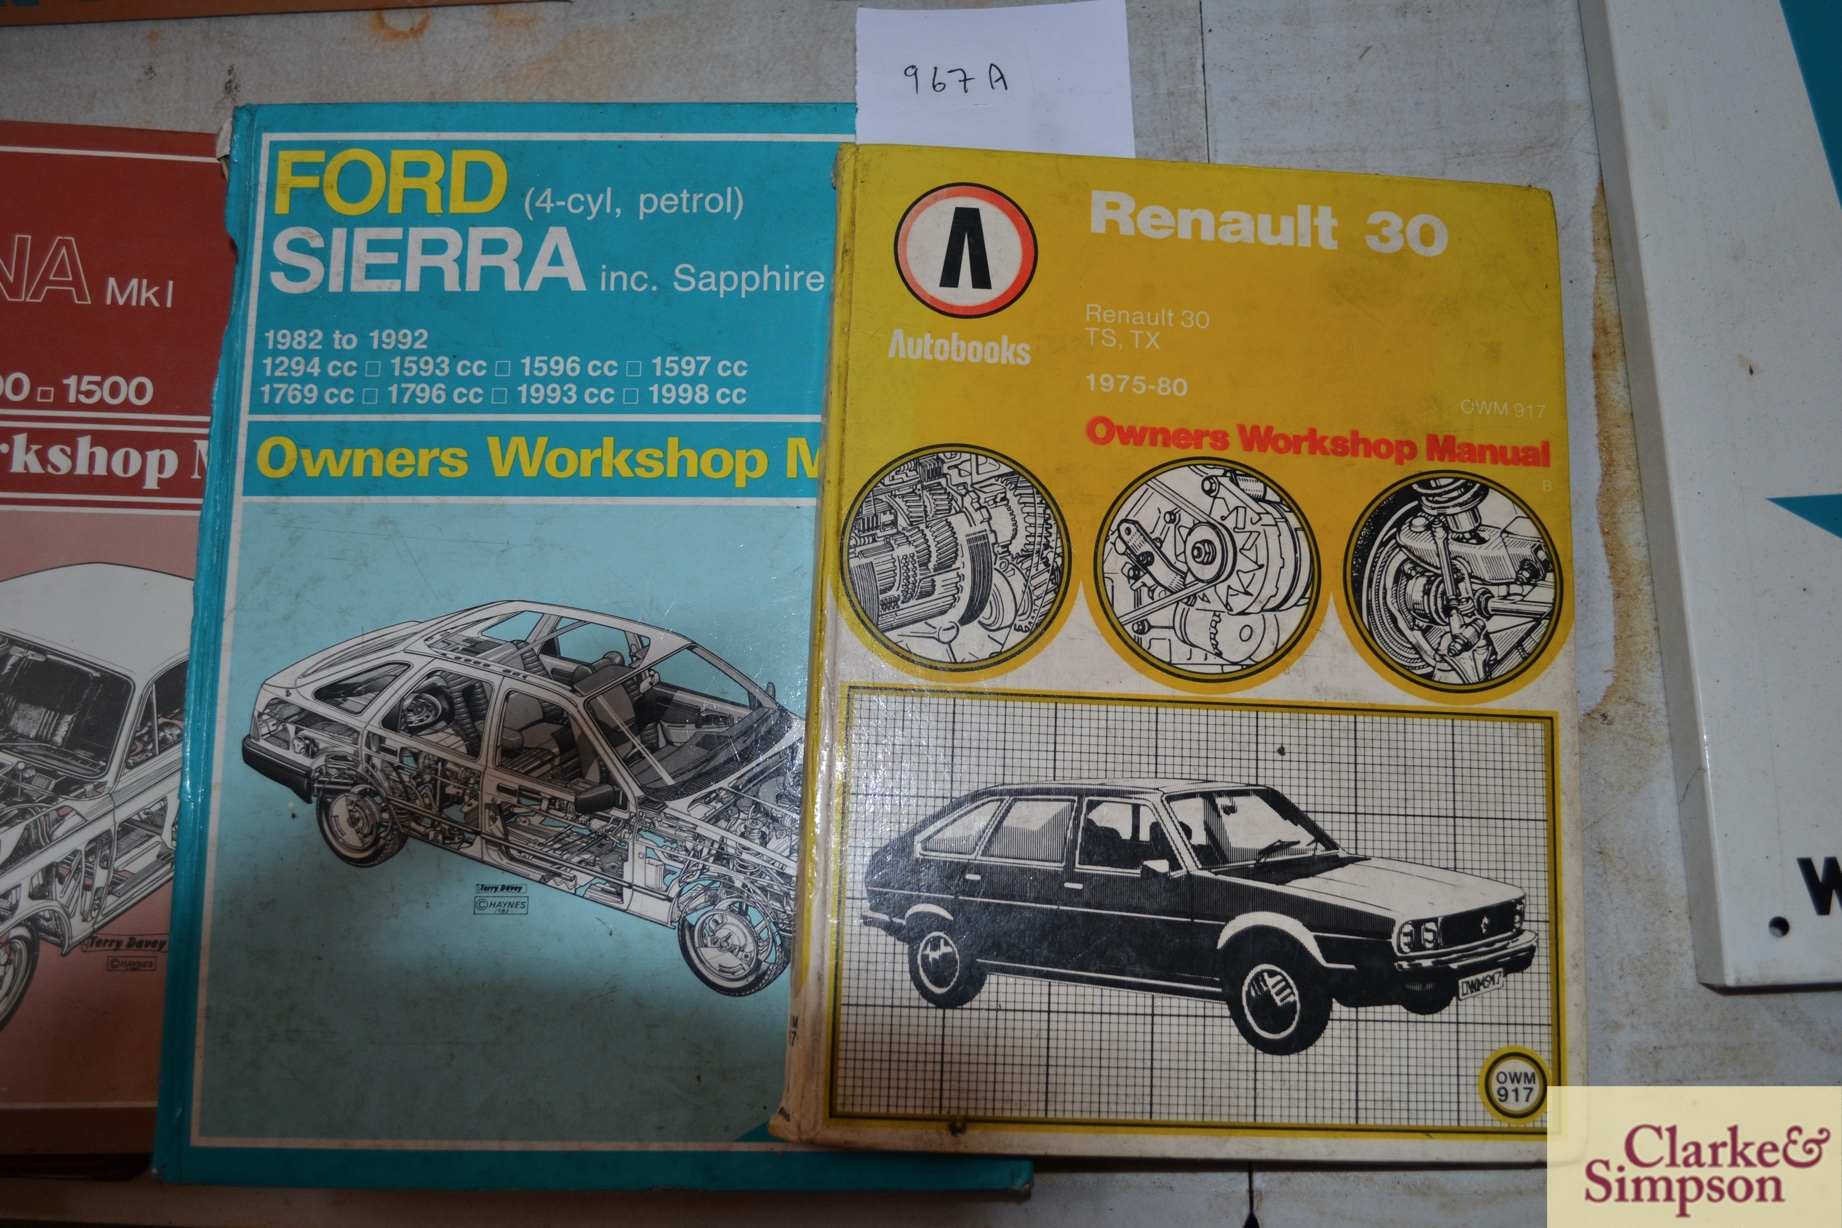 Service Literature for Ford Consol Corsair range, - Image 2 of 3